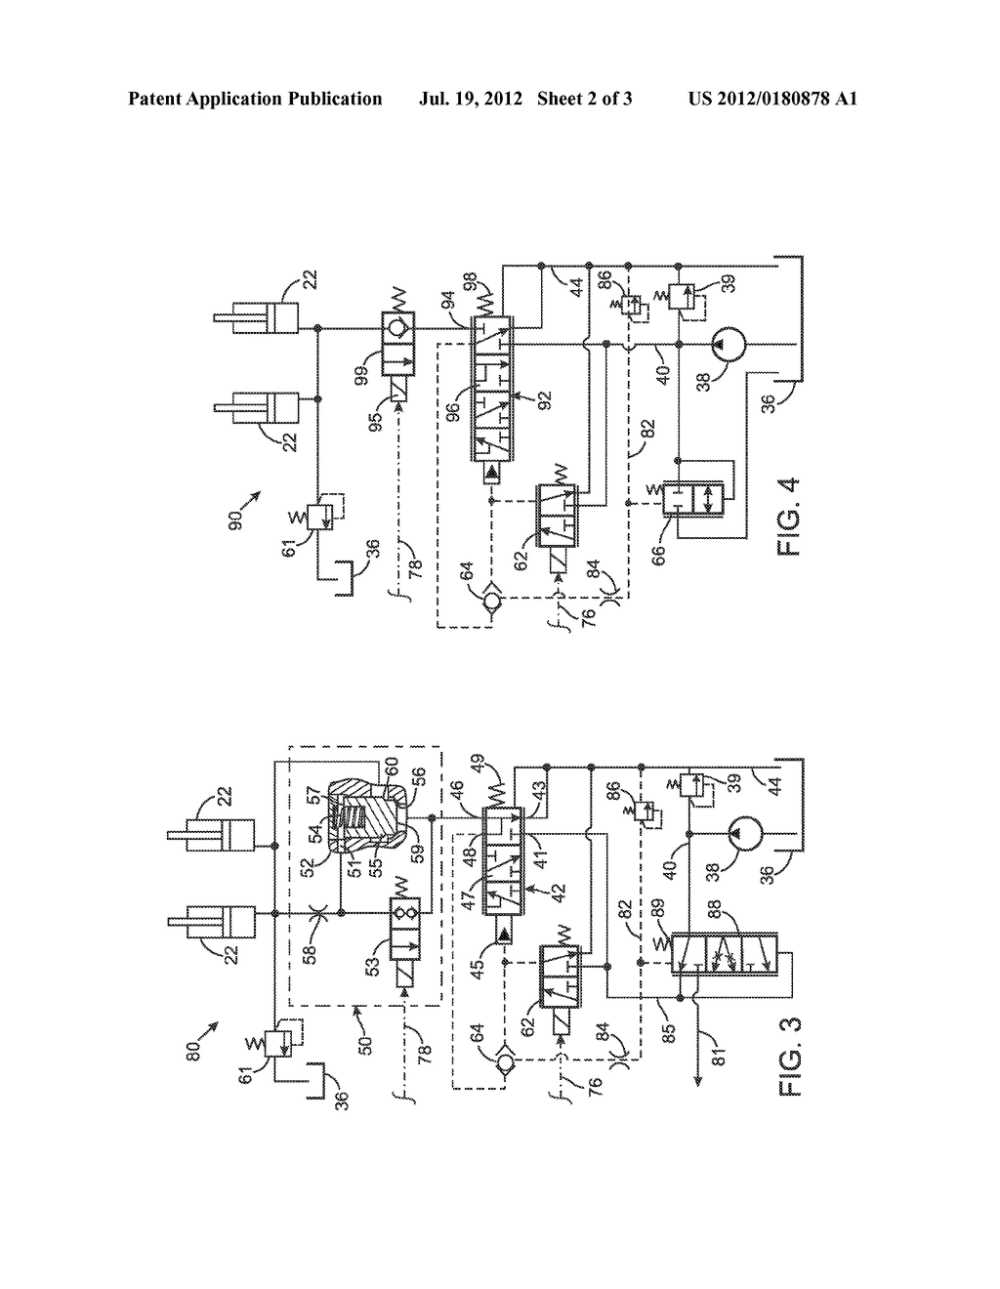 medium resolution of valve control valve circuit for operating a single acting hydraulic cylinder diagram schematic and image 03